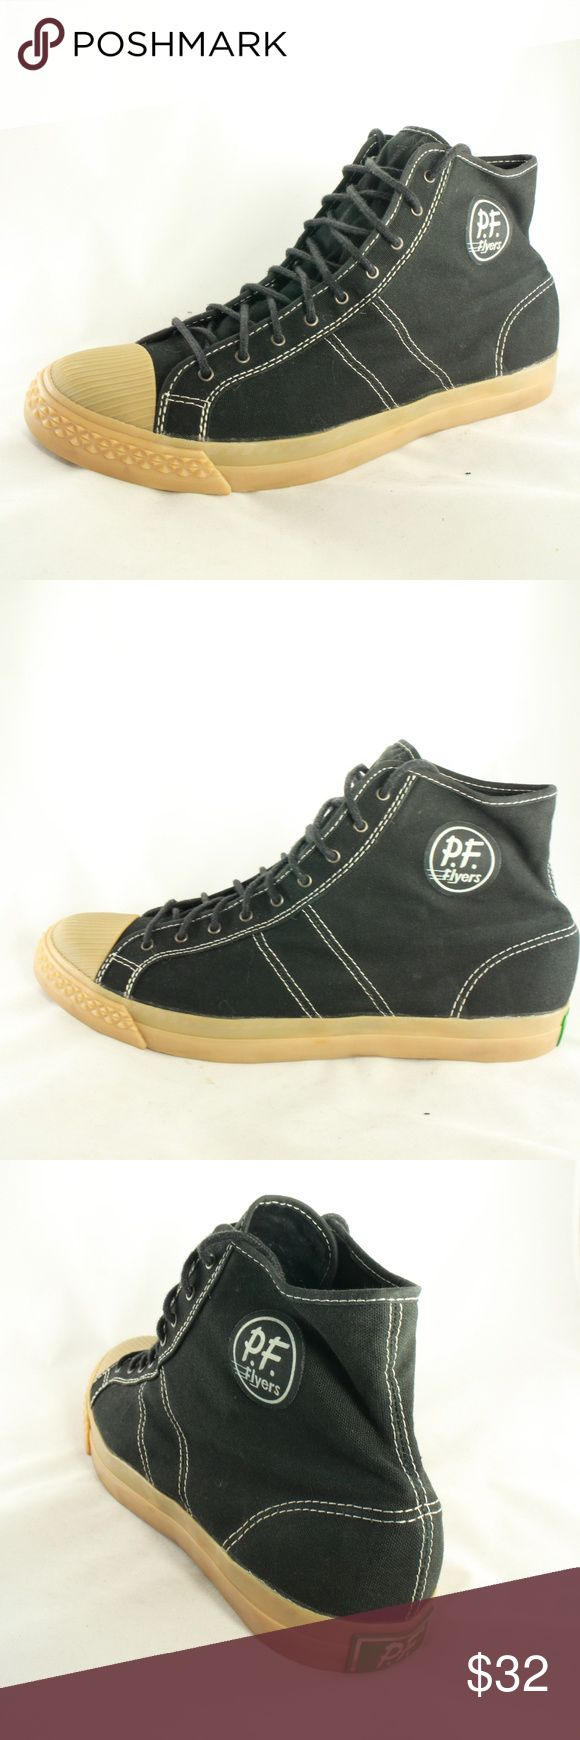 NEW PF FLYERS Black Canvas Hi Tops with Gum Sole Perfectly mint black canvas classic hi tops. New, never worn.  Size 12 Men Size 13.5 Women PF Flyers Shoes Sneakers